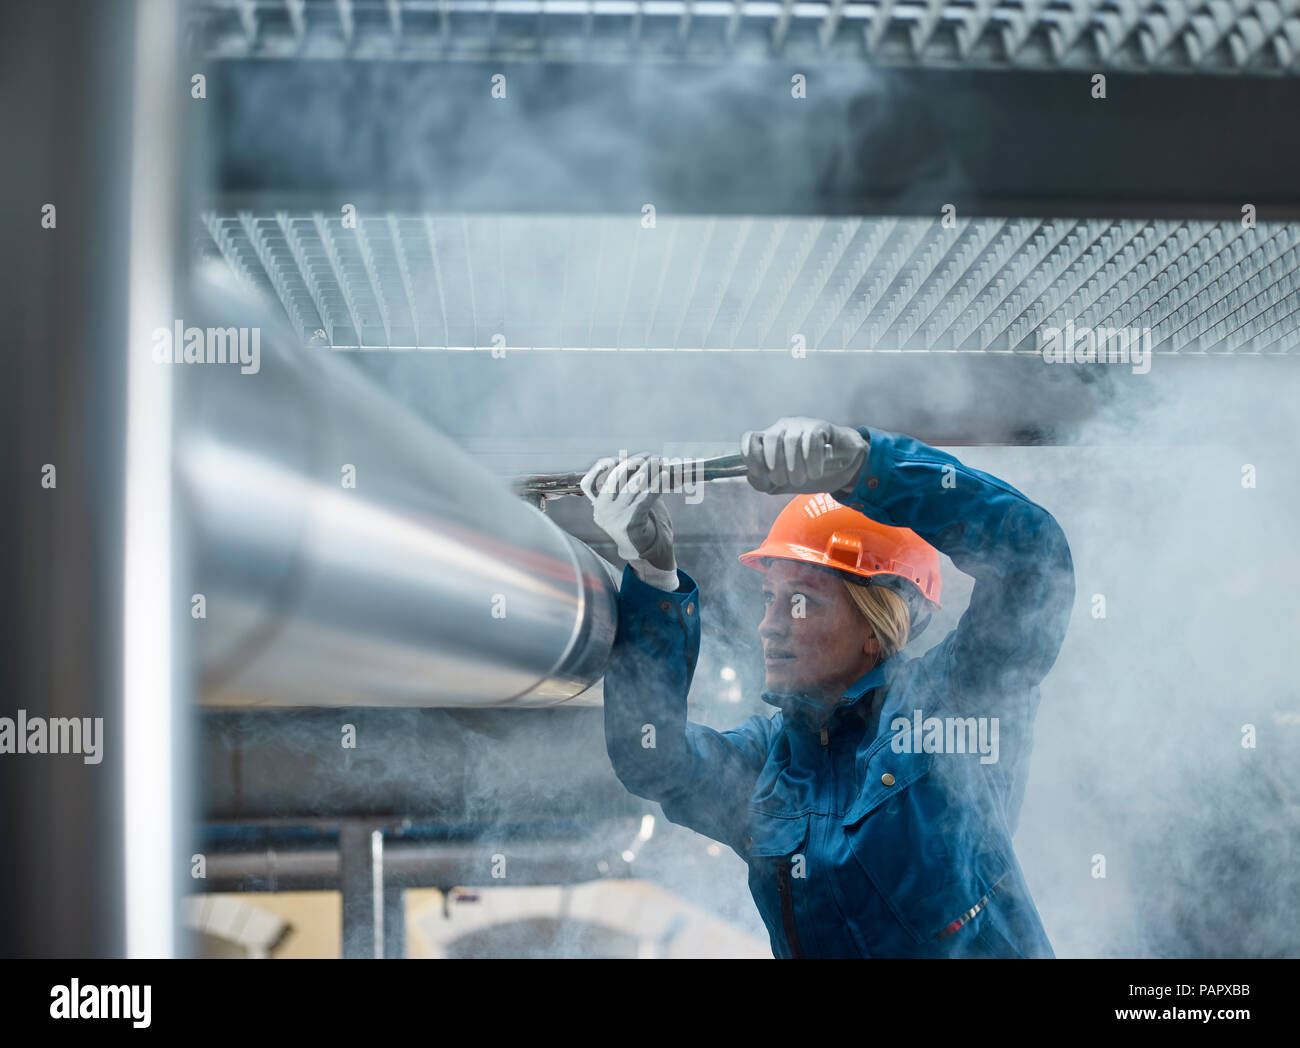 Female mechanic fixing pipework with gaspipe pliers - Stock Image